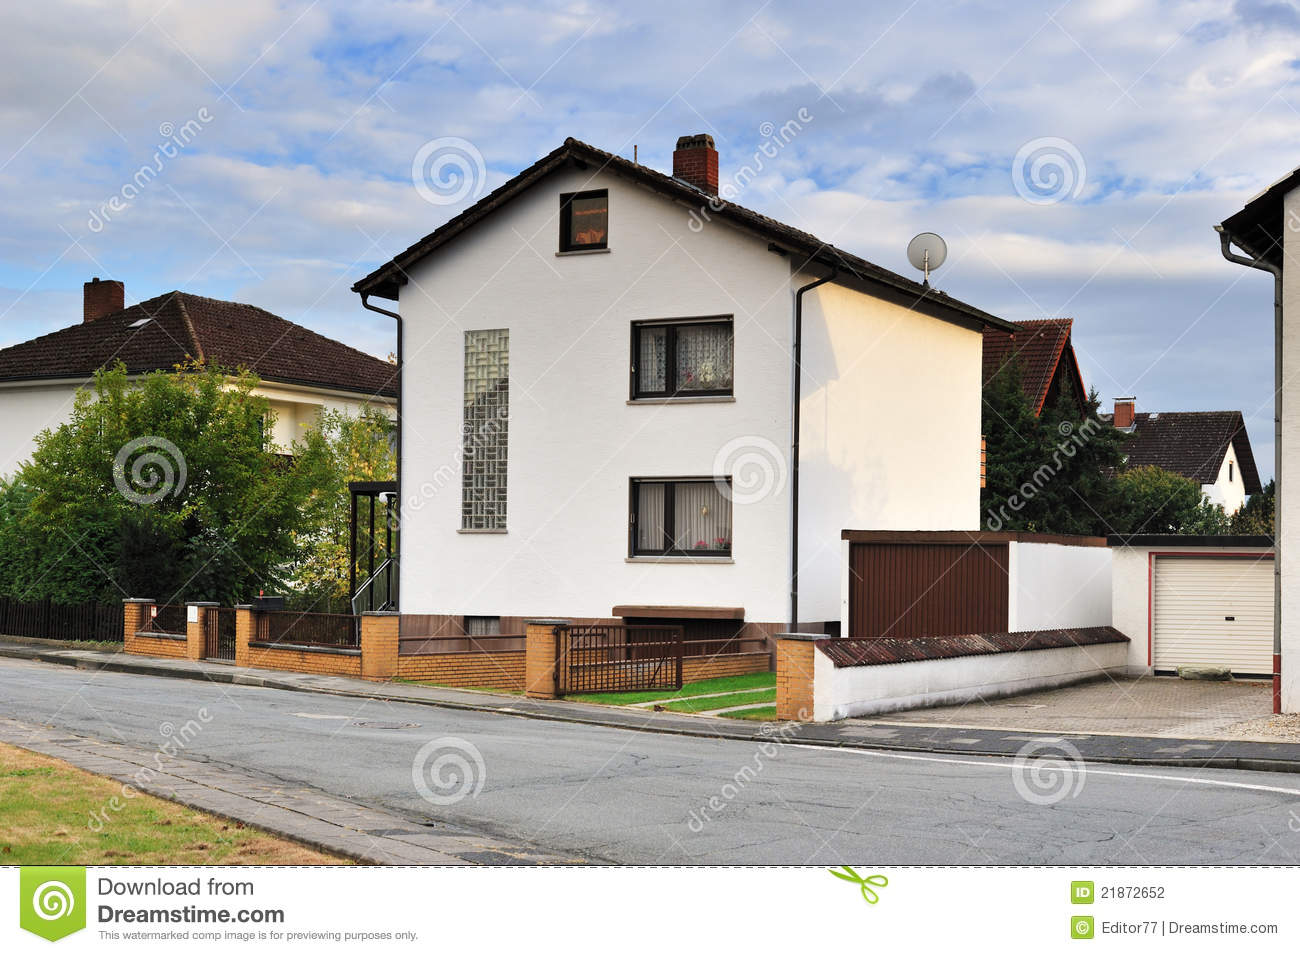 House facade with small courtyard in front stock for Courtyard in front of house